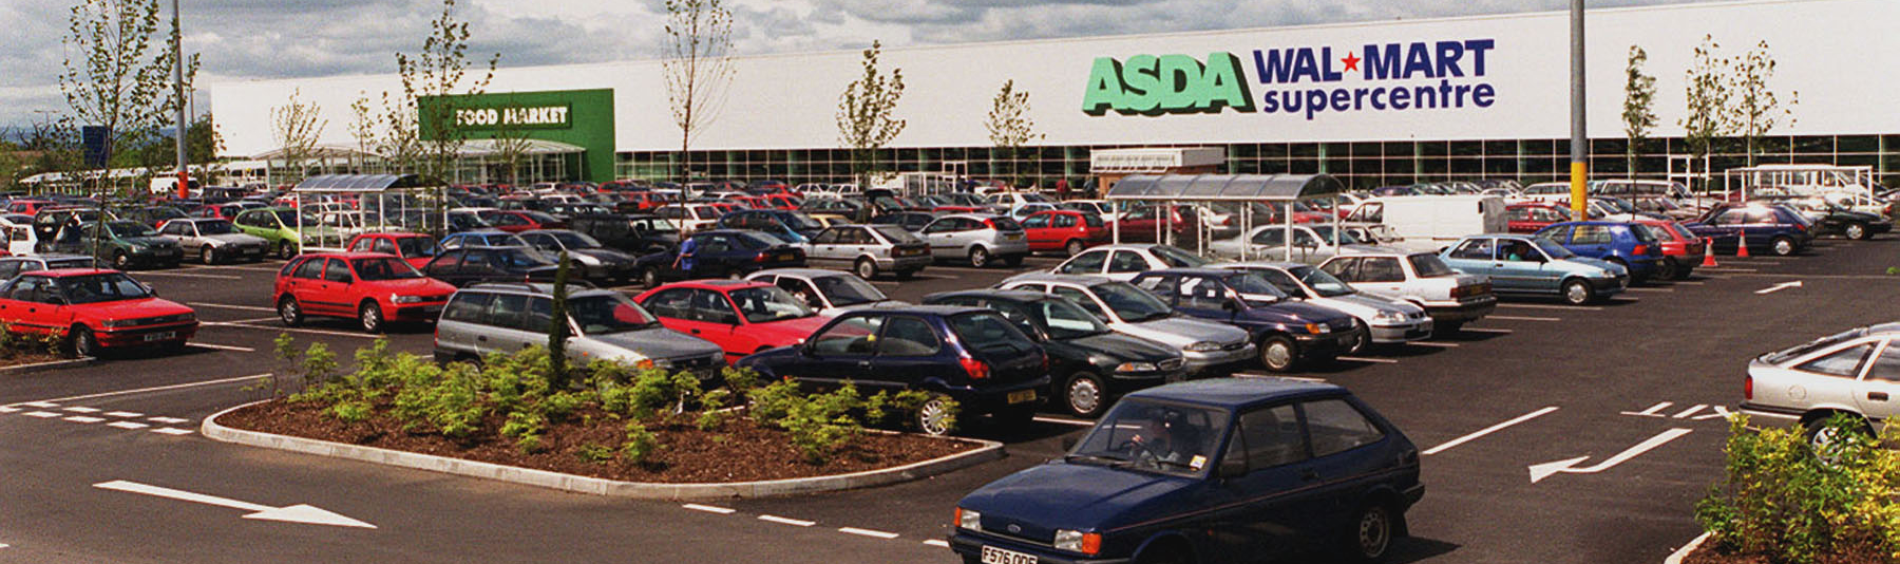 Older Asda store exterior and late 80's-90's cars in the car park